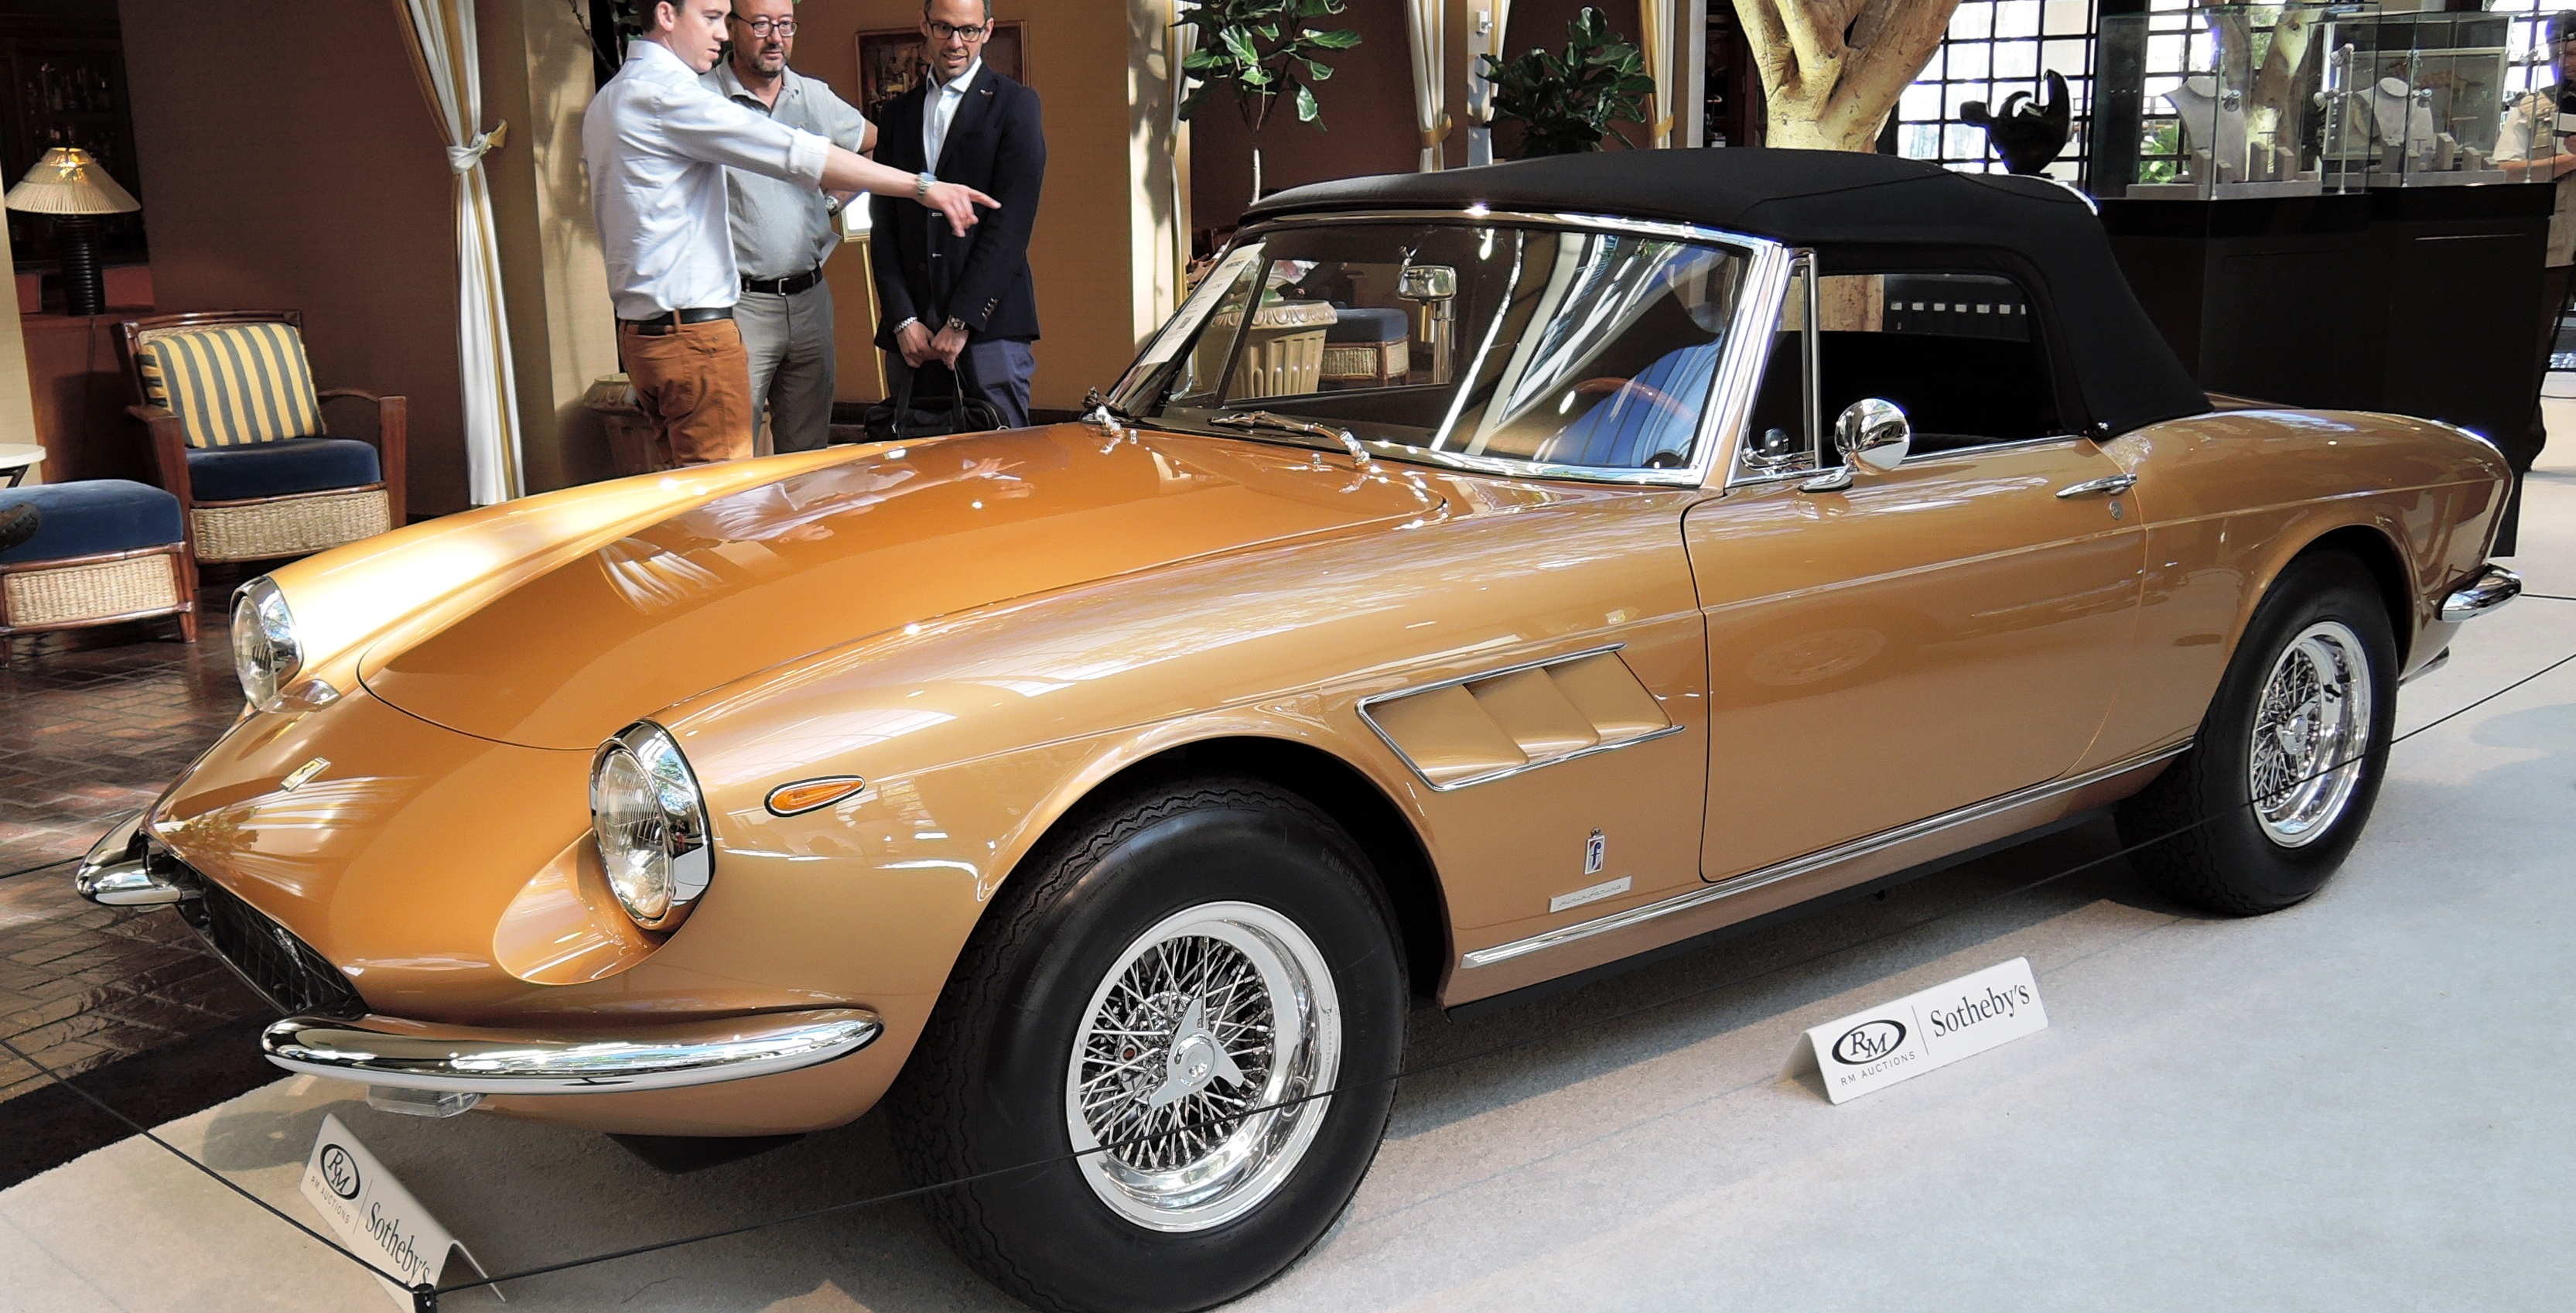 oro chiaro 1967 Ferrari 330 GTS by Pininfarina at RM Sotheby''s - classic car auctions